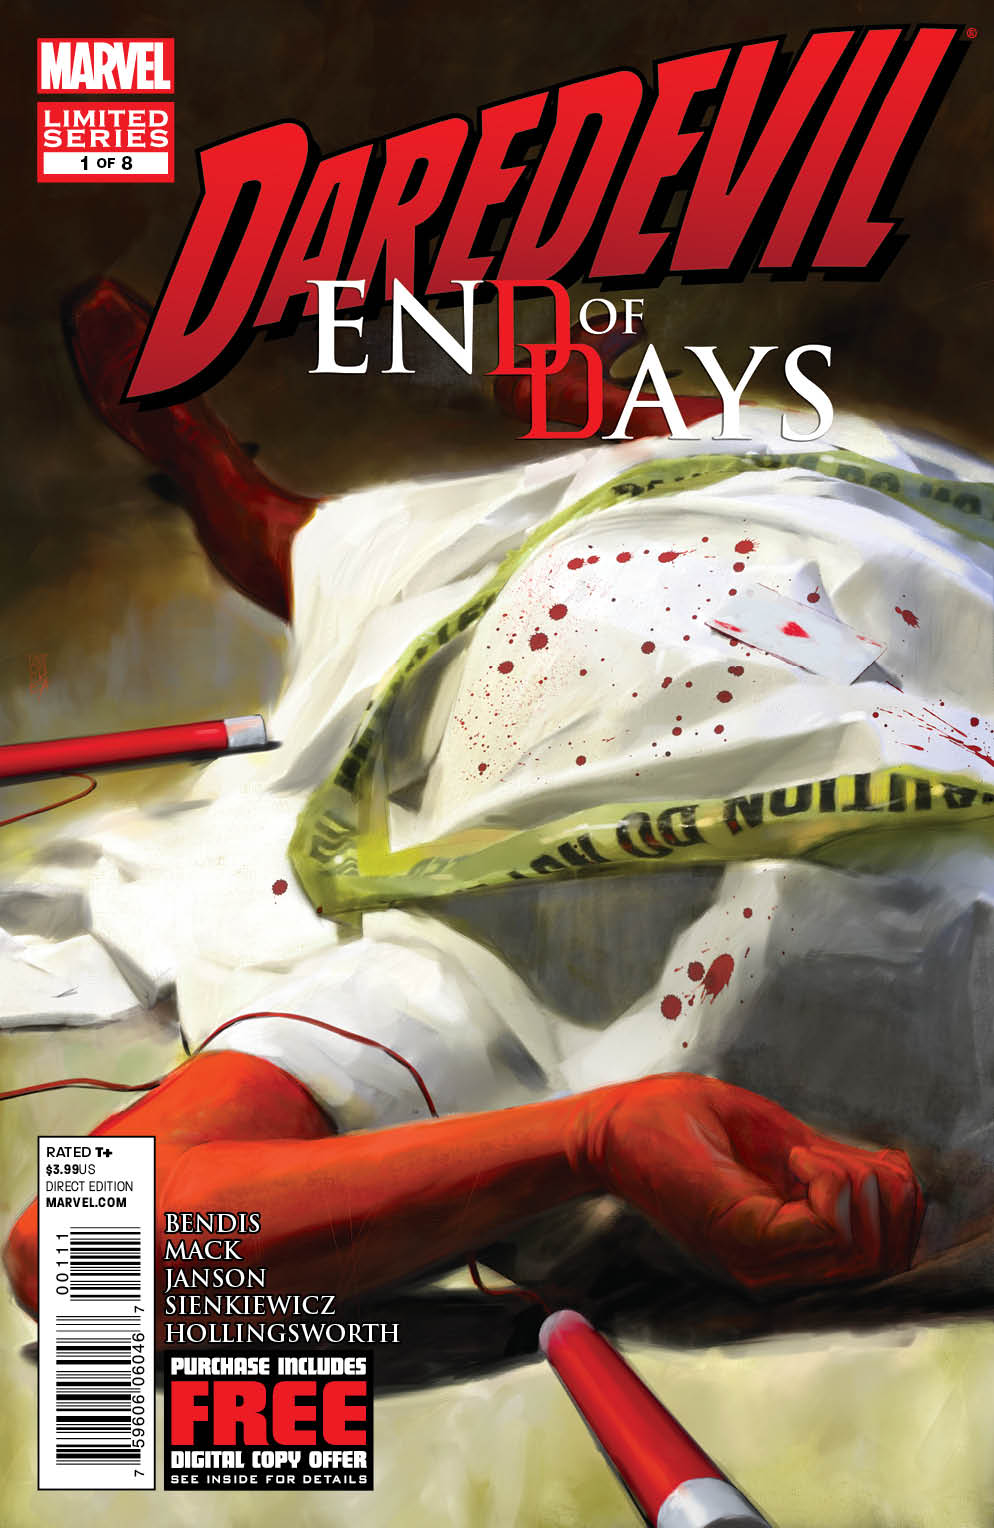 DAREDEVIL END OF DAYS #1